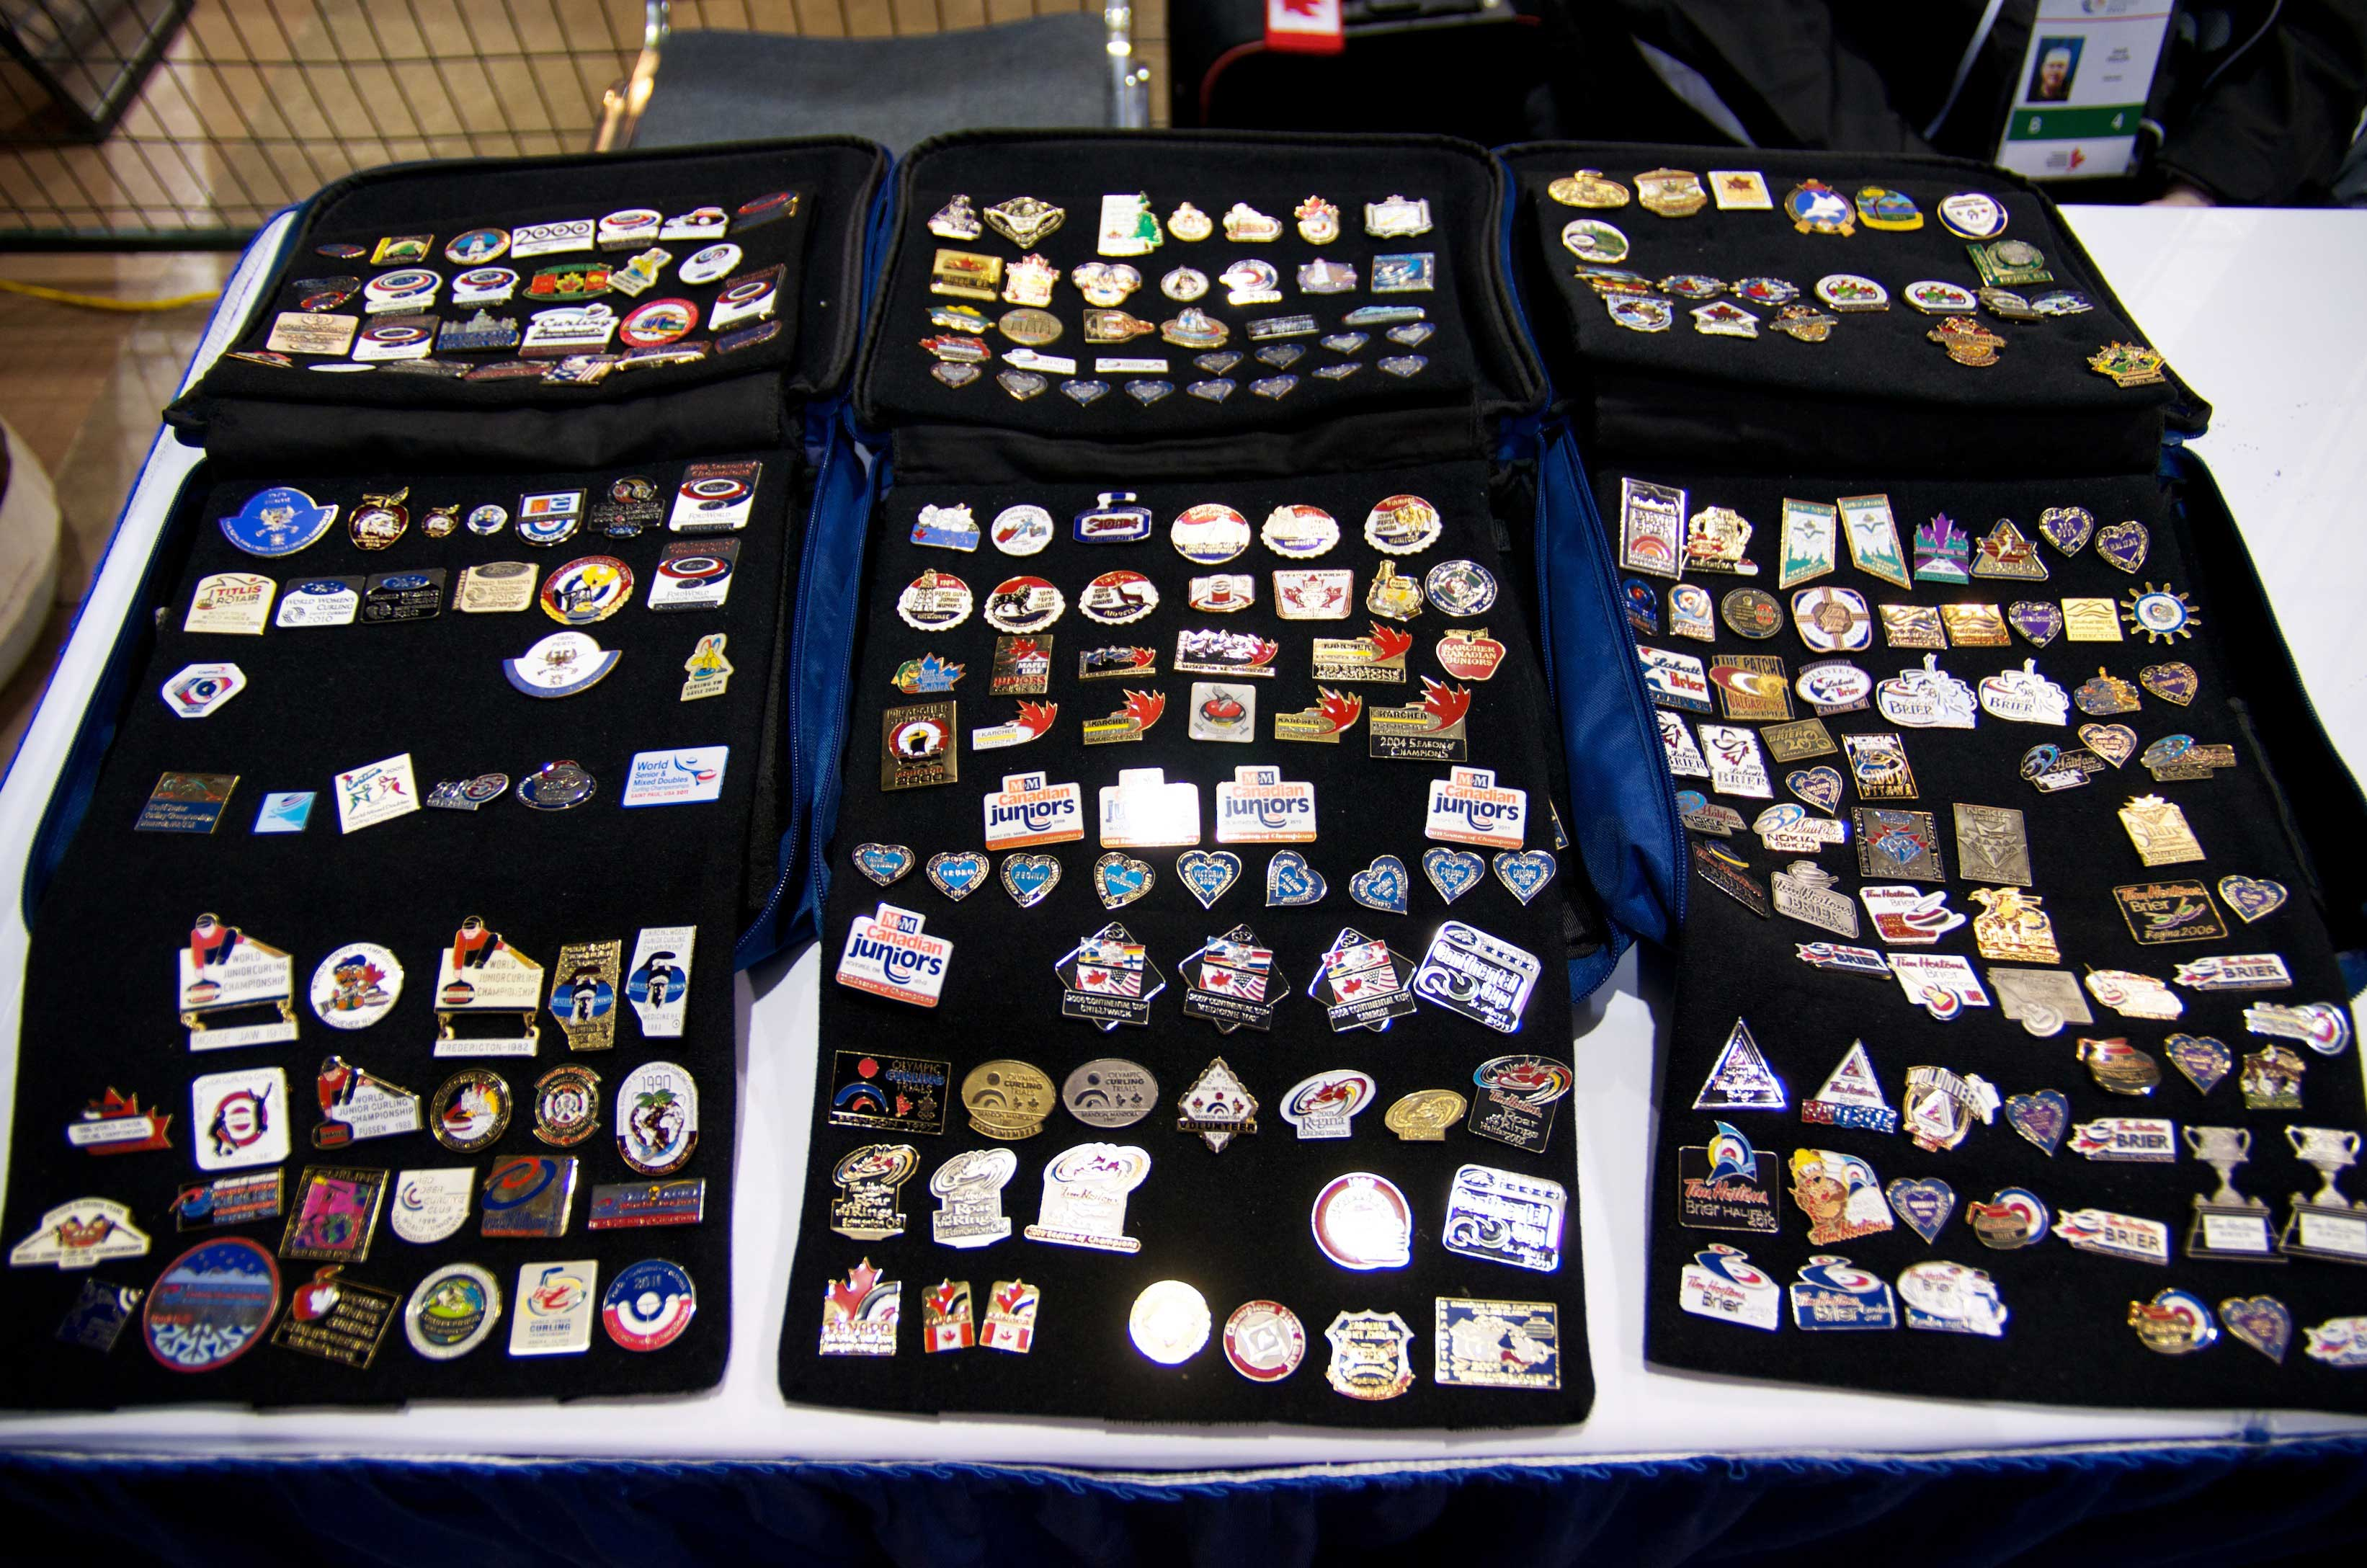 Pin collecting big part of curling | Curling Canada